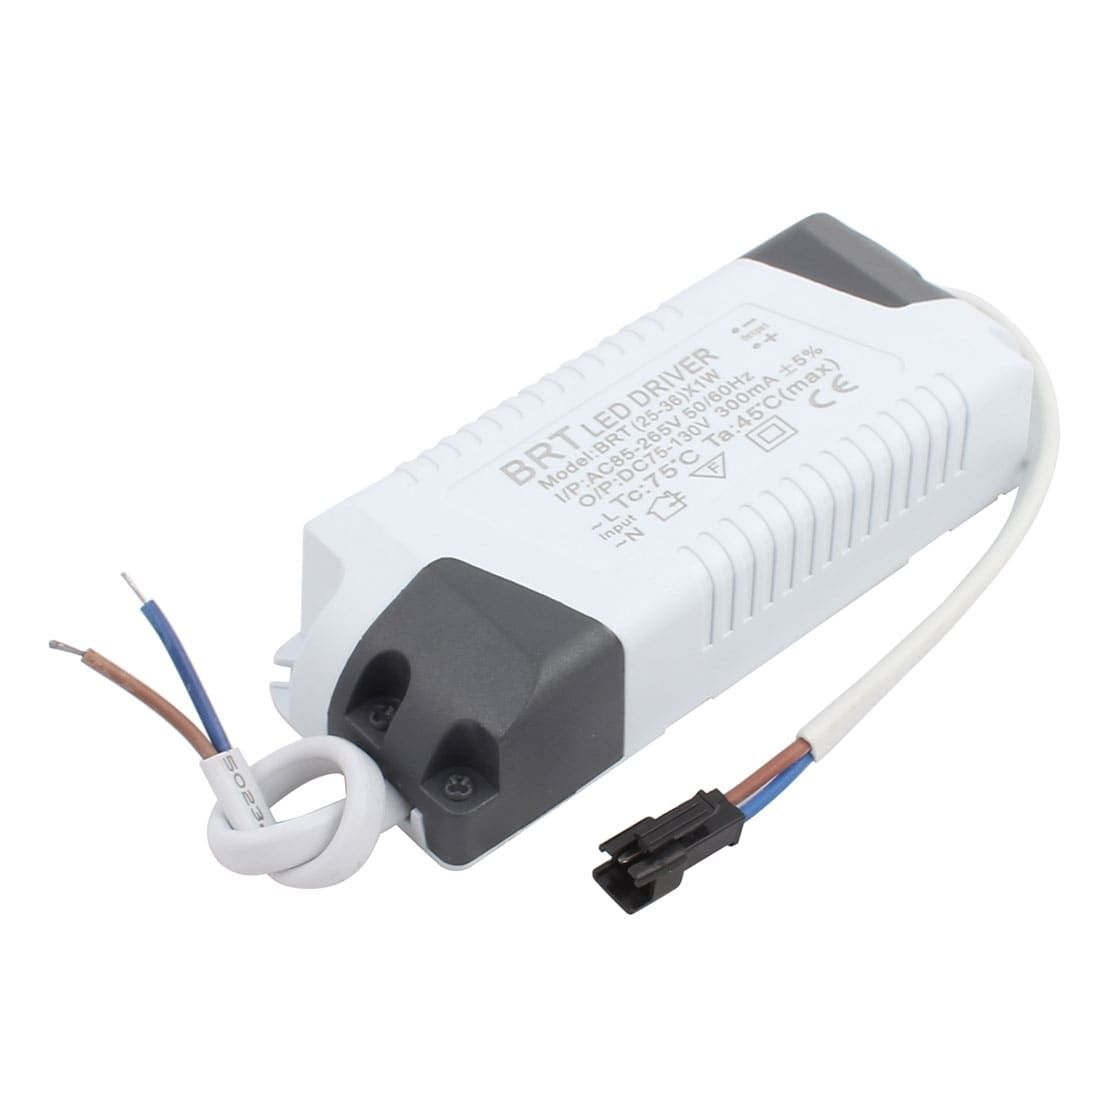 25 36 X 1w Terminal Connector Advanced Plastic Shell White Led Driver Power